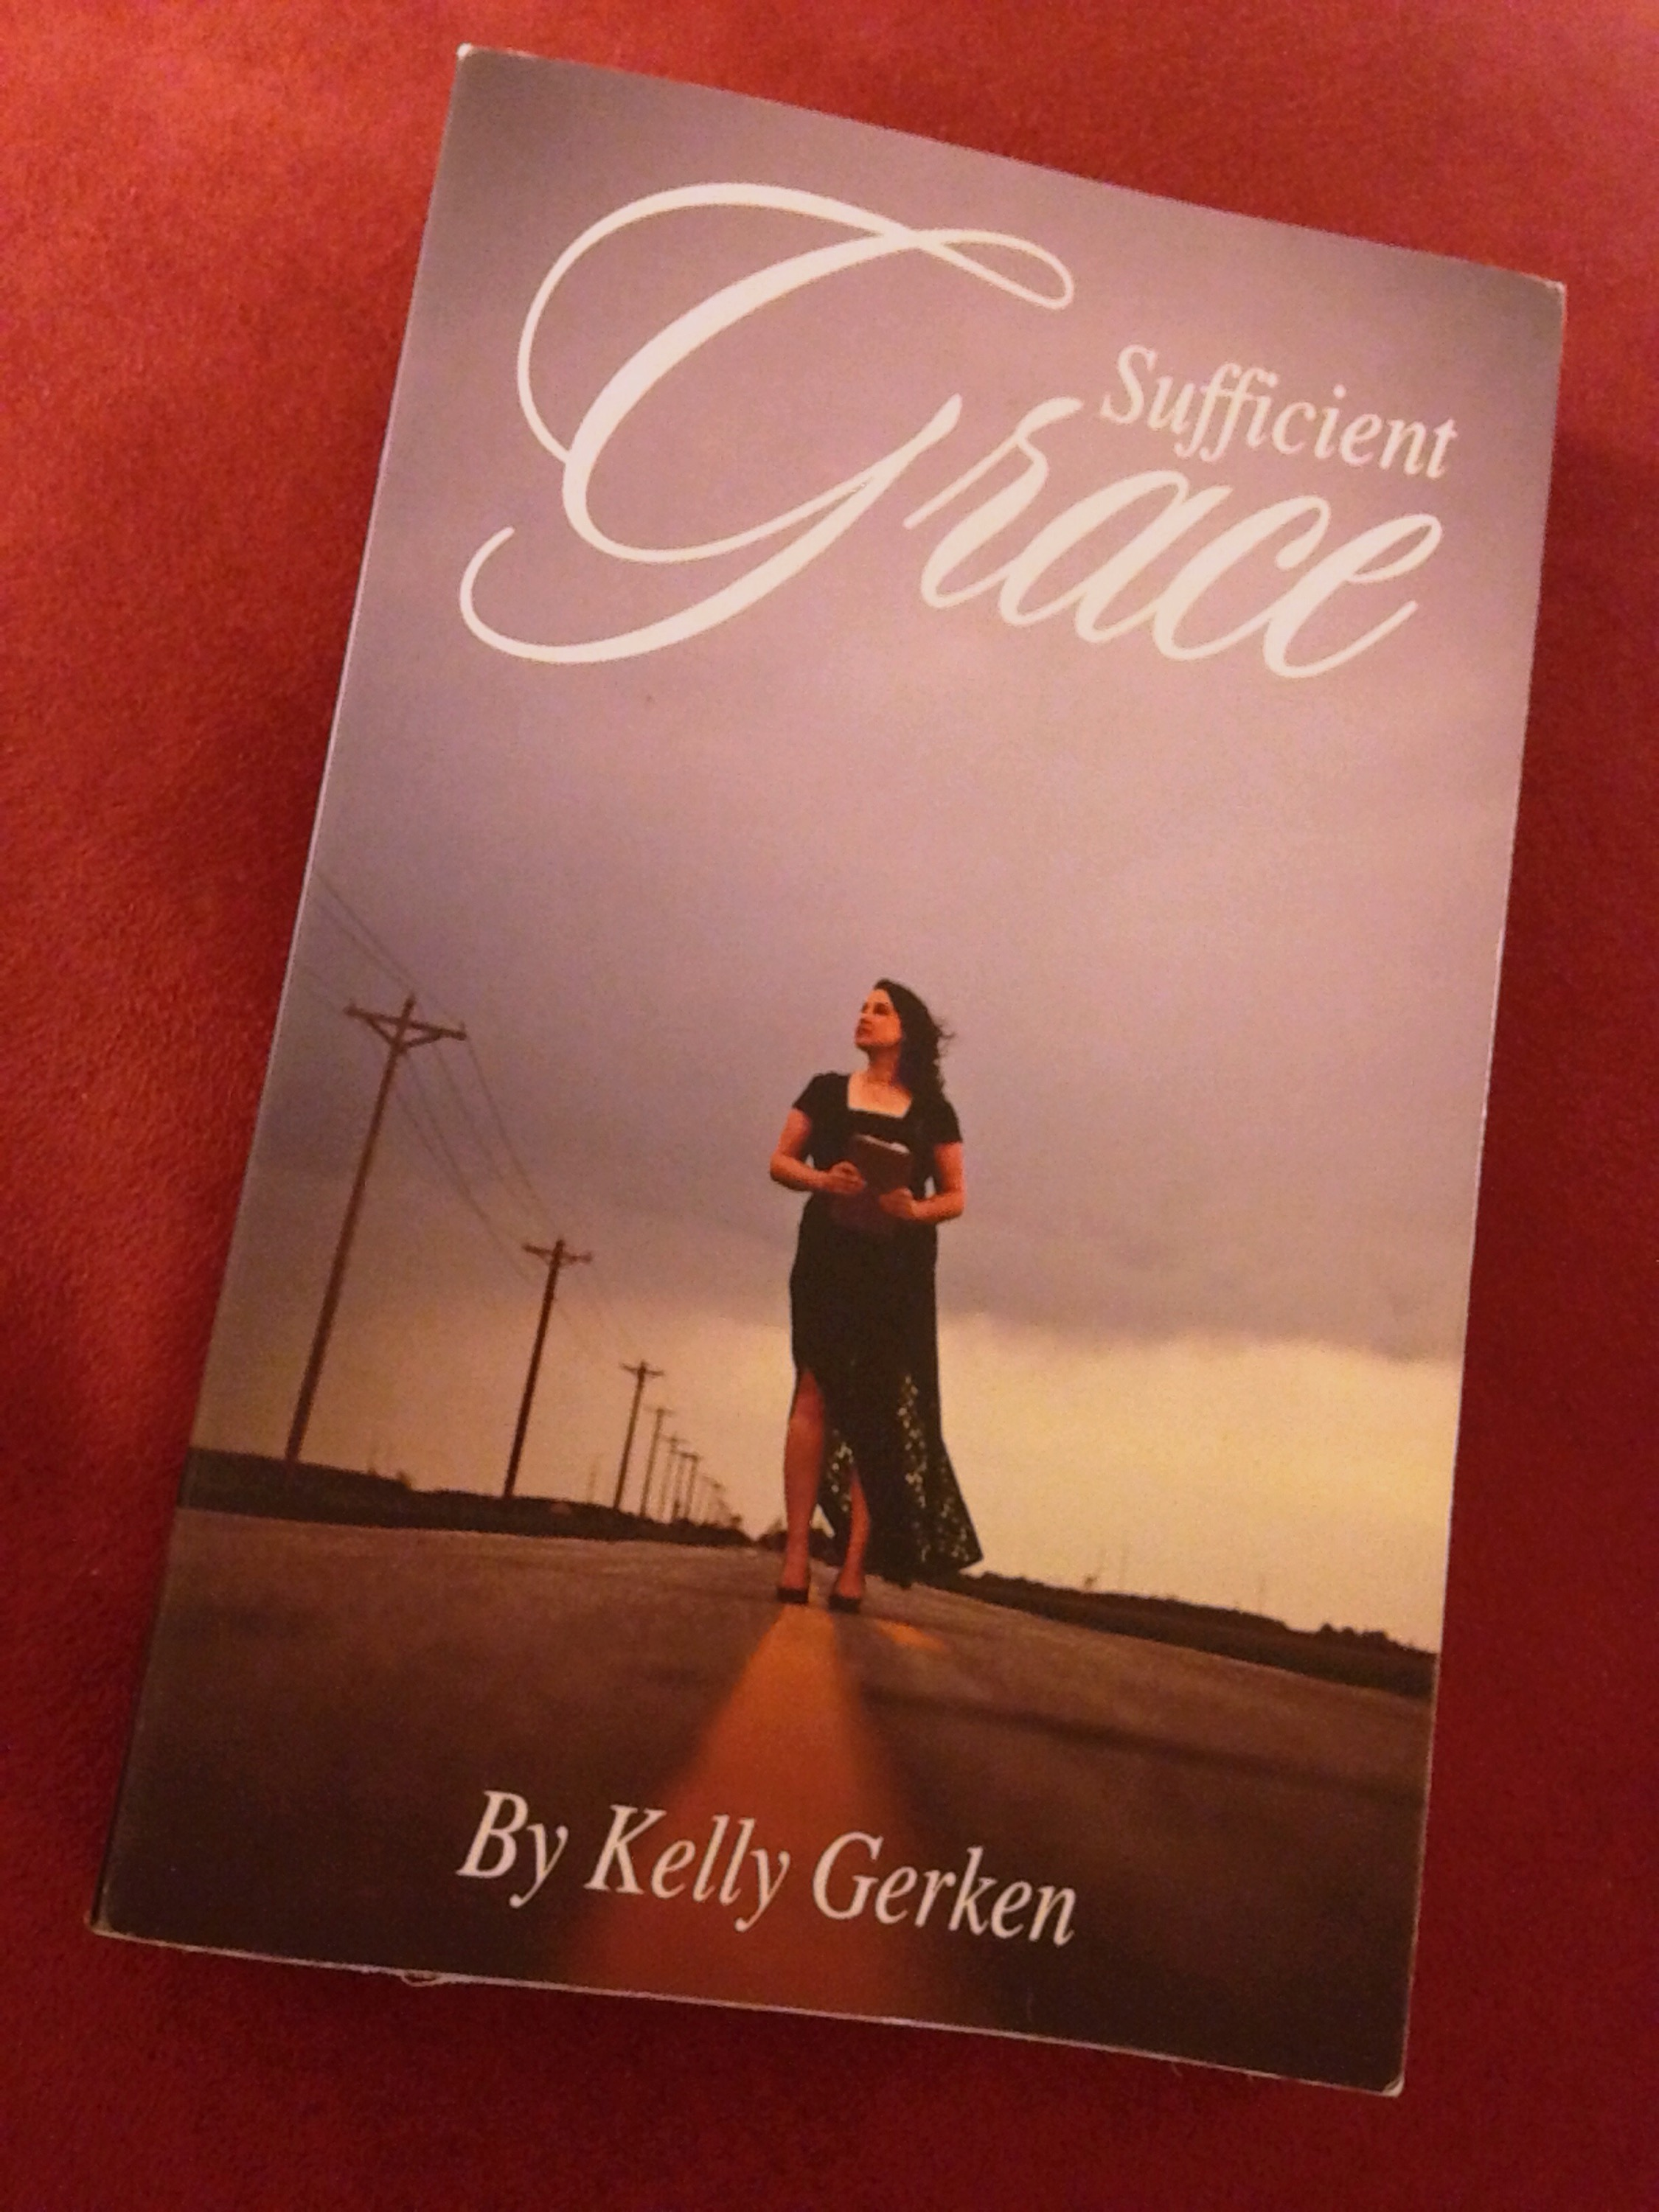 Sufficient Grace by Kelly Gerken